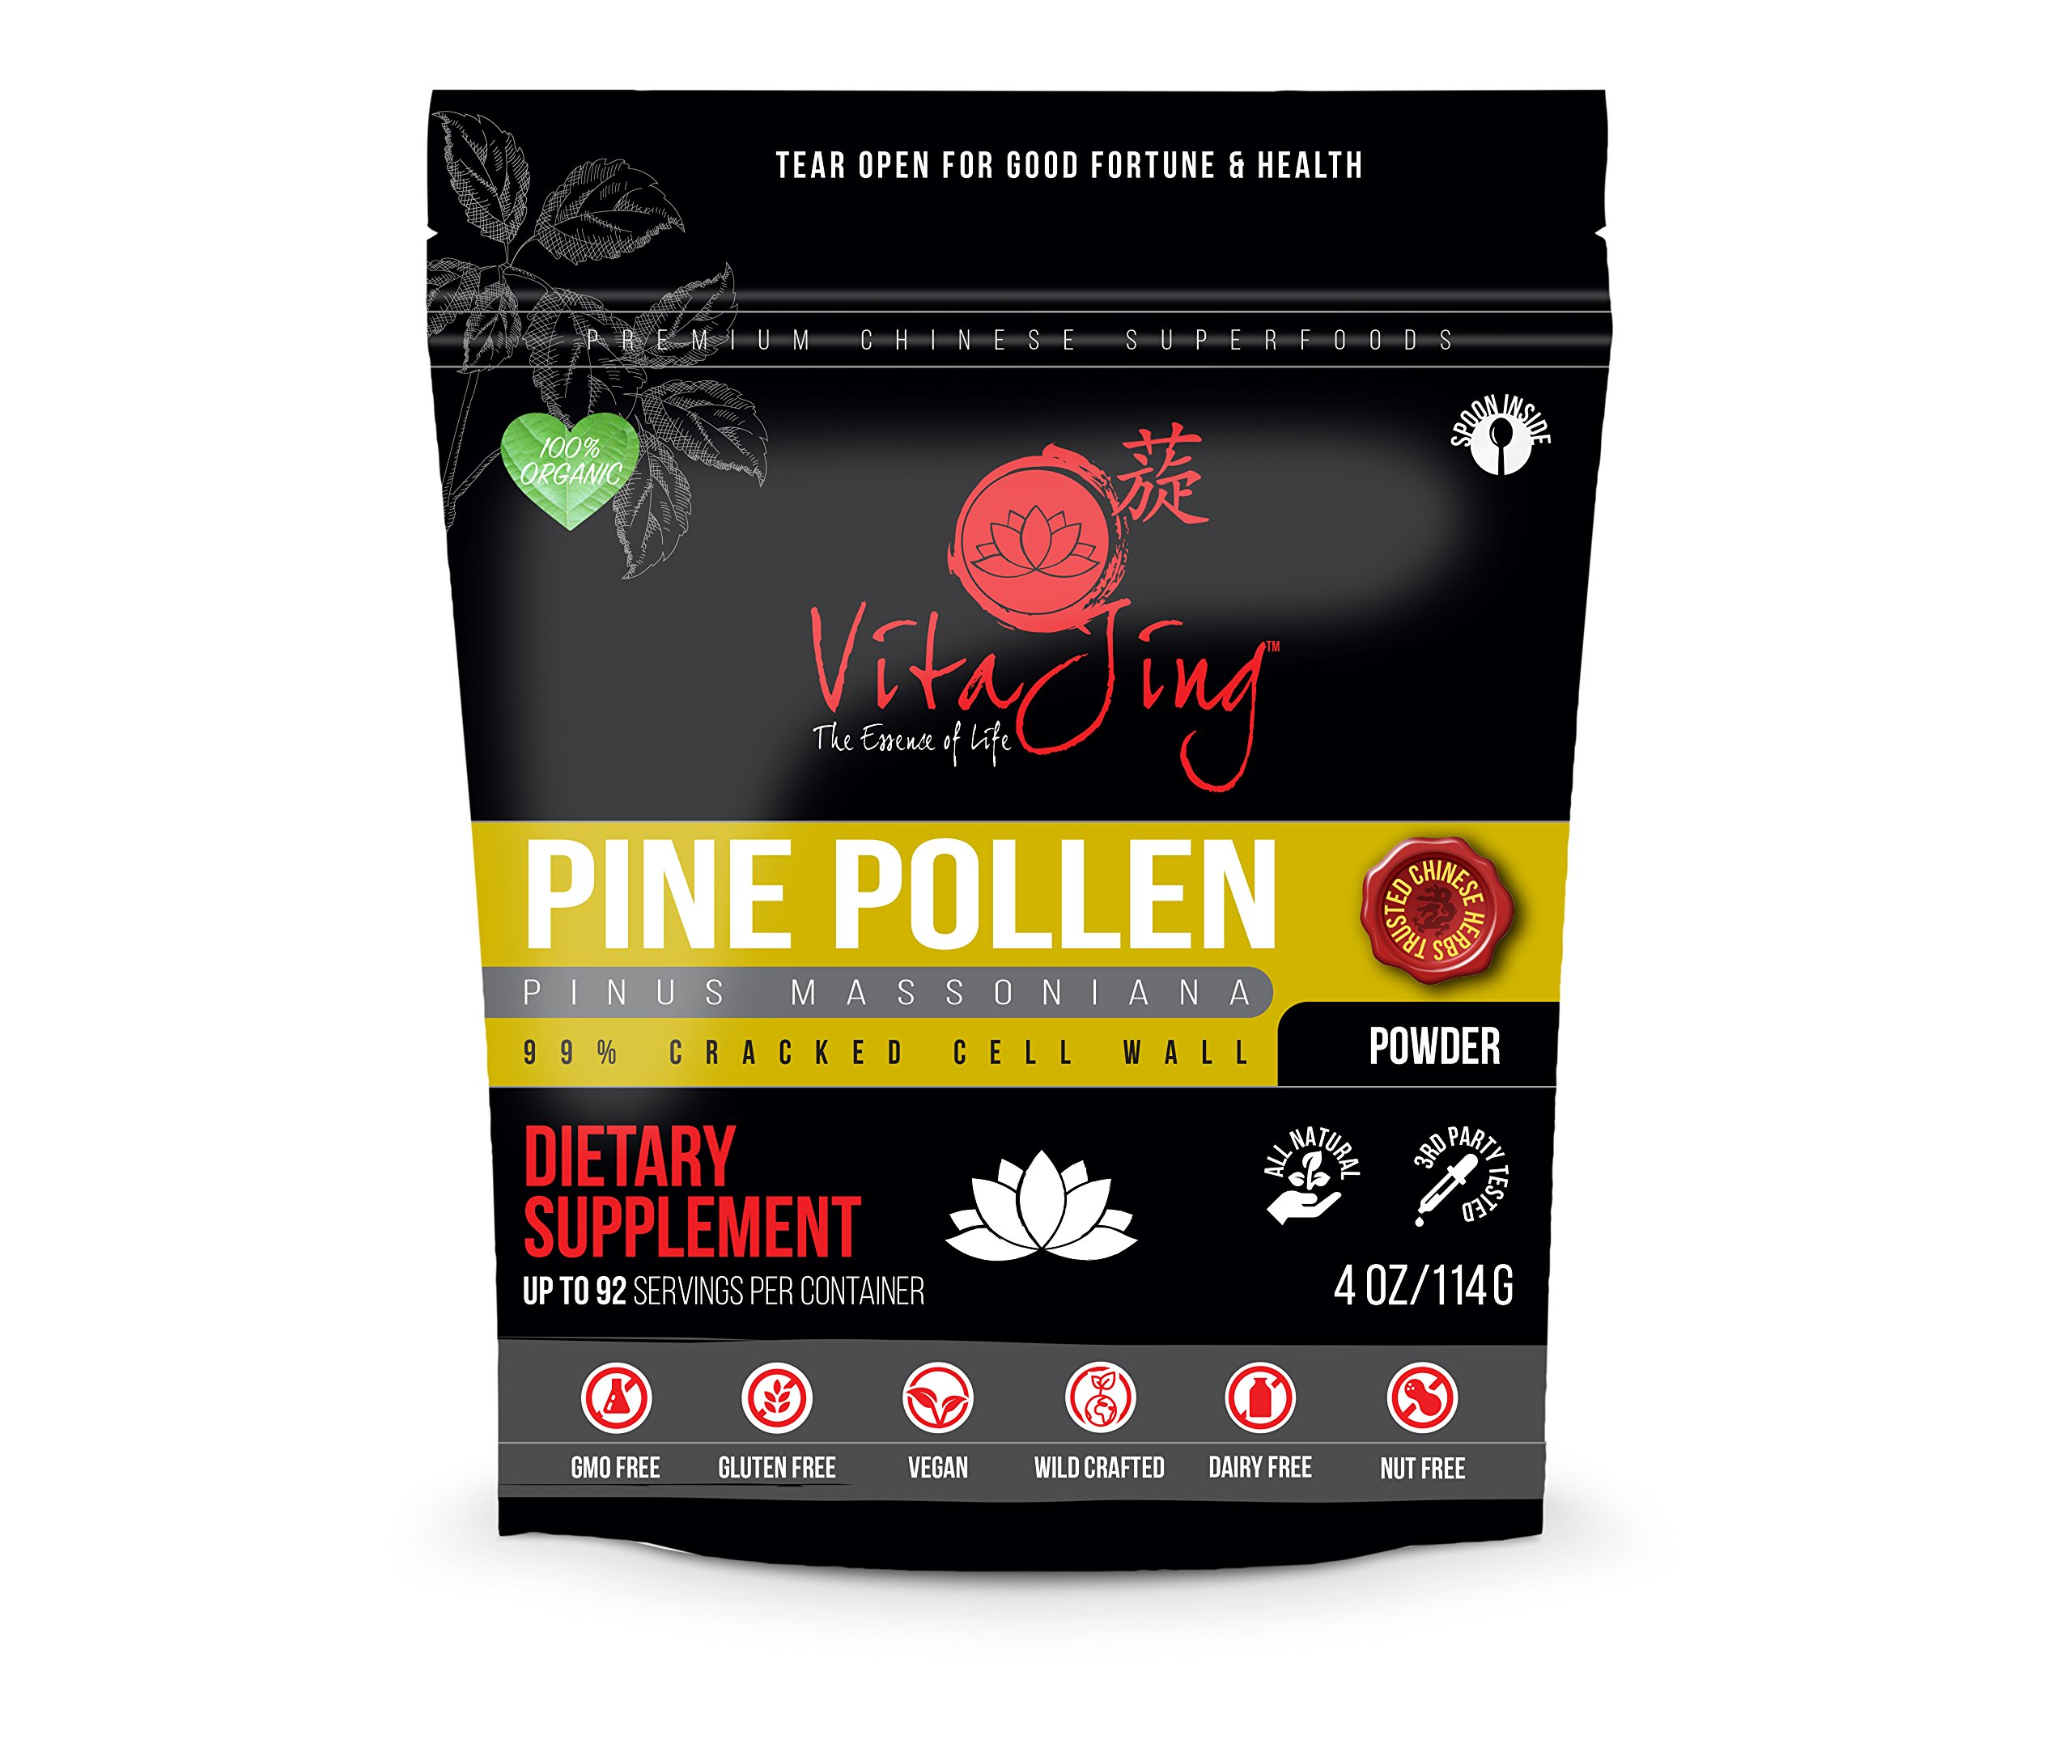 Organic Pine Pollen Powder Extract (8oz/227gm) Raw Form, Pure Wild Harvested, 99 Percent Broken Cell Wall for Optimal Absorption and Potency (Up to 184 Servings)